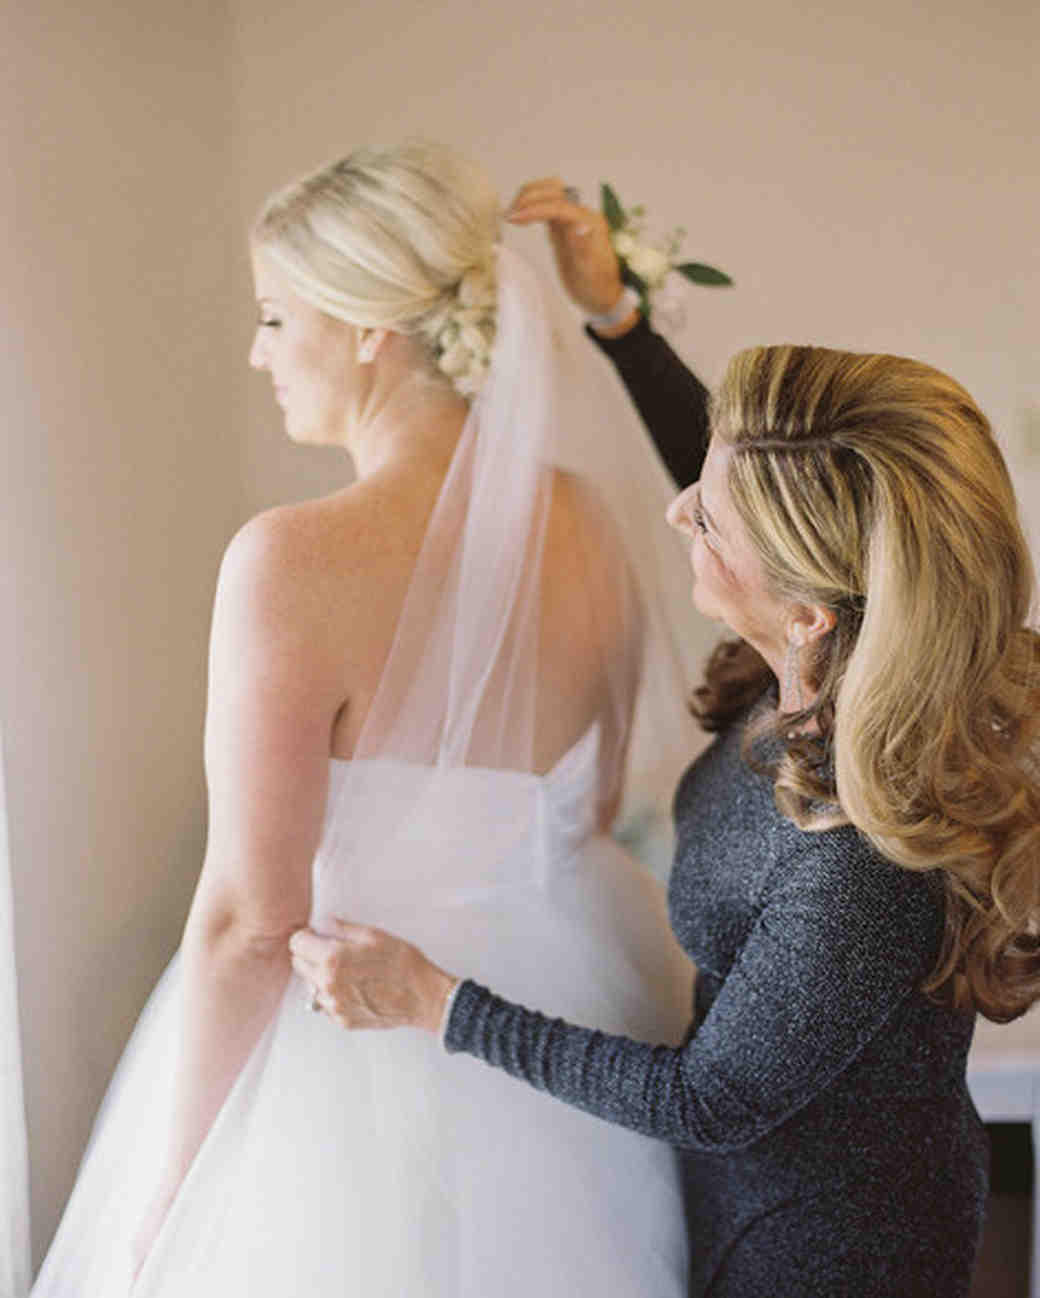 A Mother Helping Her Daughter with Her Hair Before Her Wedding